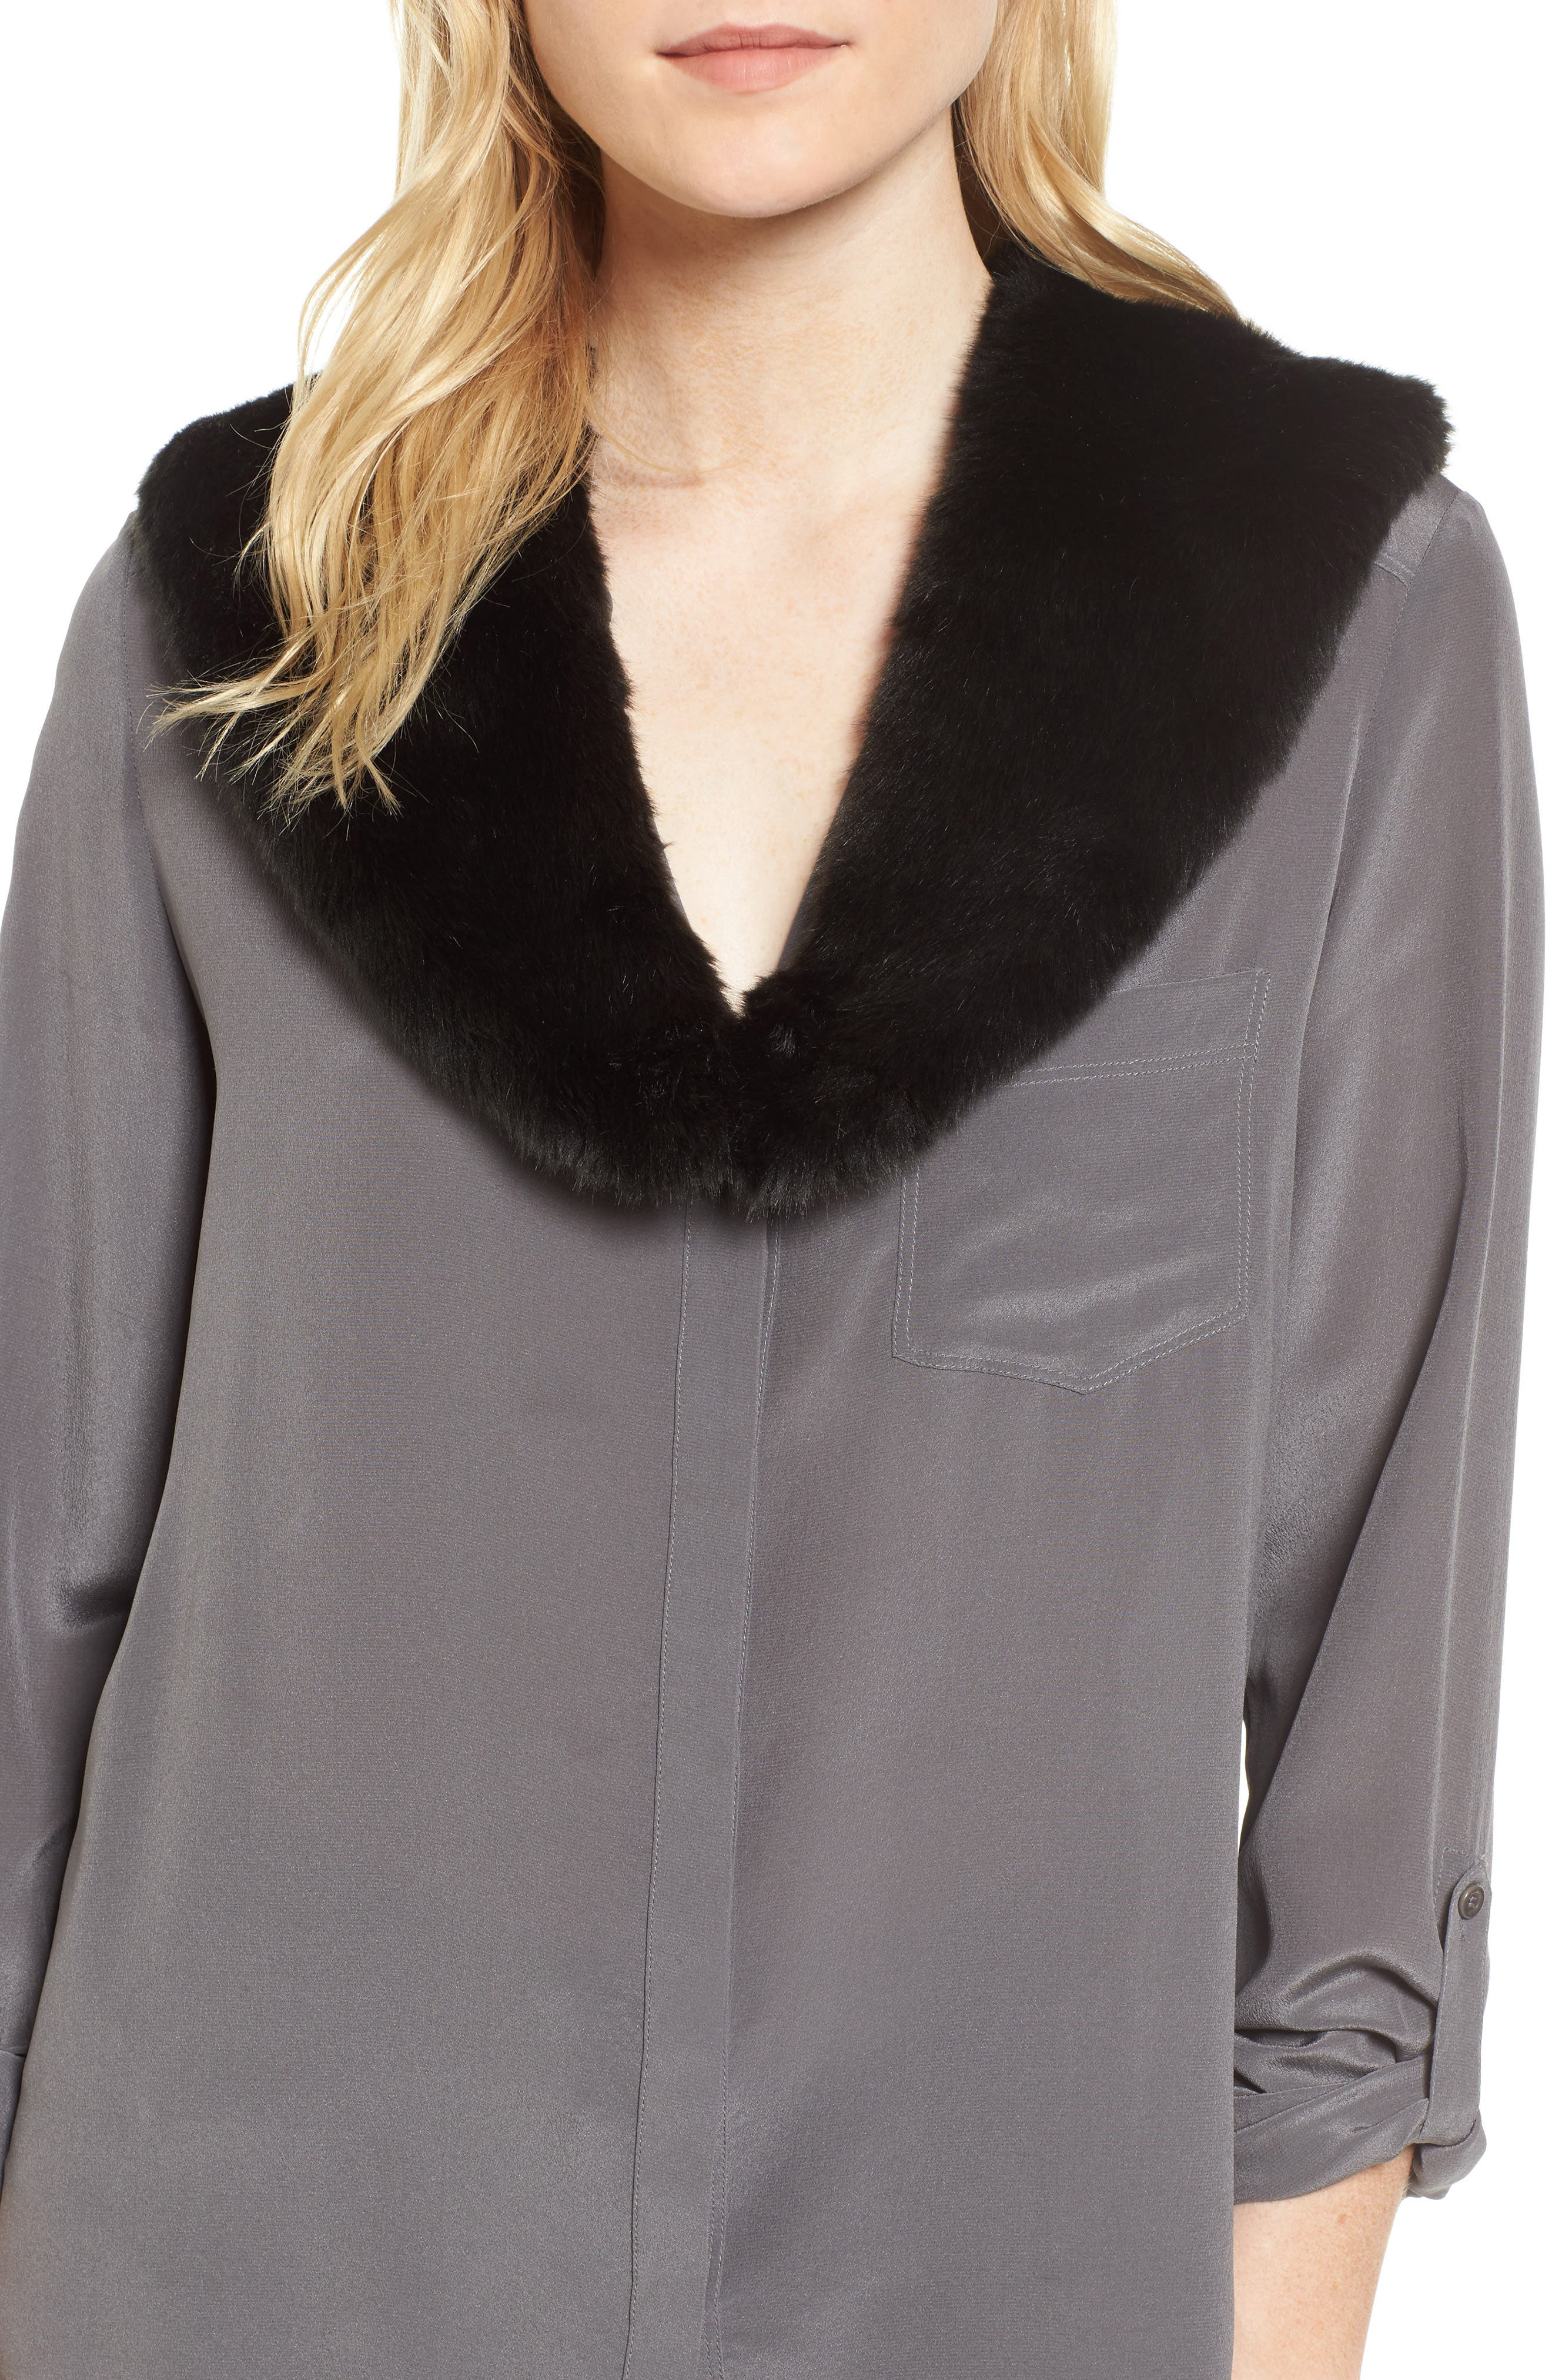 Badgley Mischka Faux Fur Collar,                         Main,                         color, 001